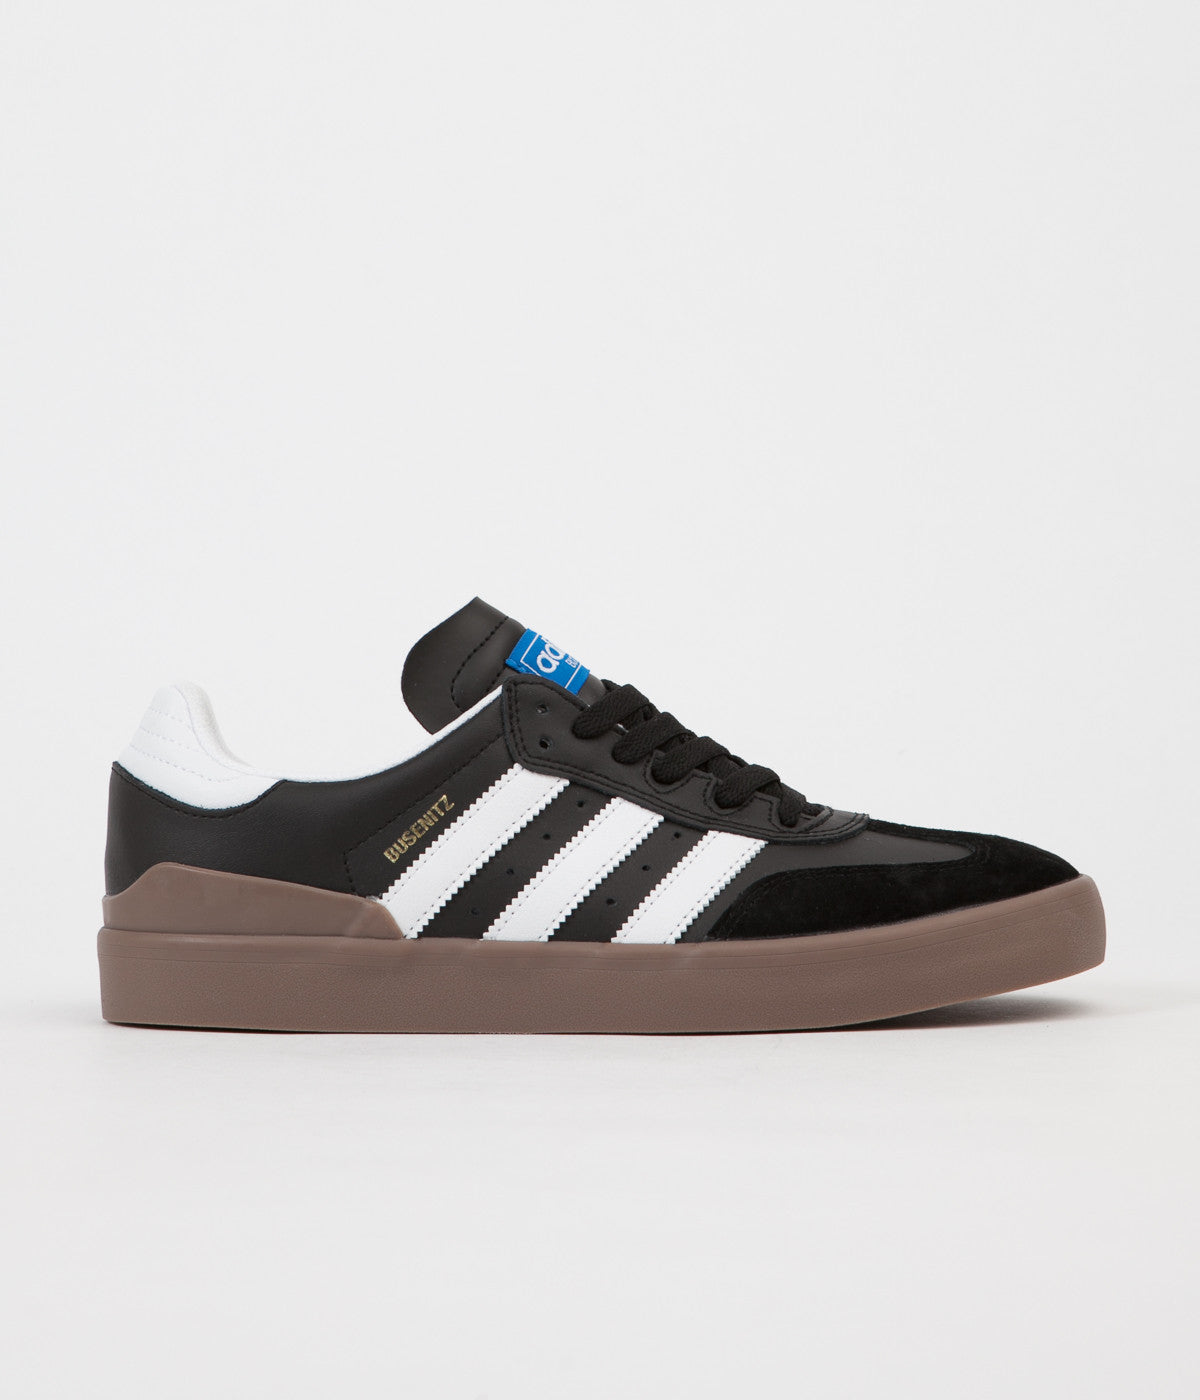 los angeles 2b8fa 564e8 Adidas Busenitz Vulc RX Shoes - Core Black  White  Gum5